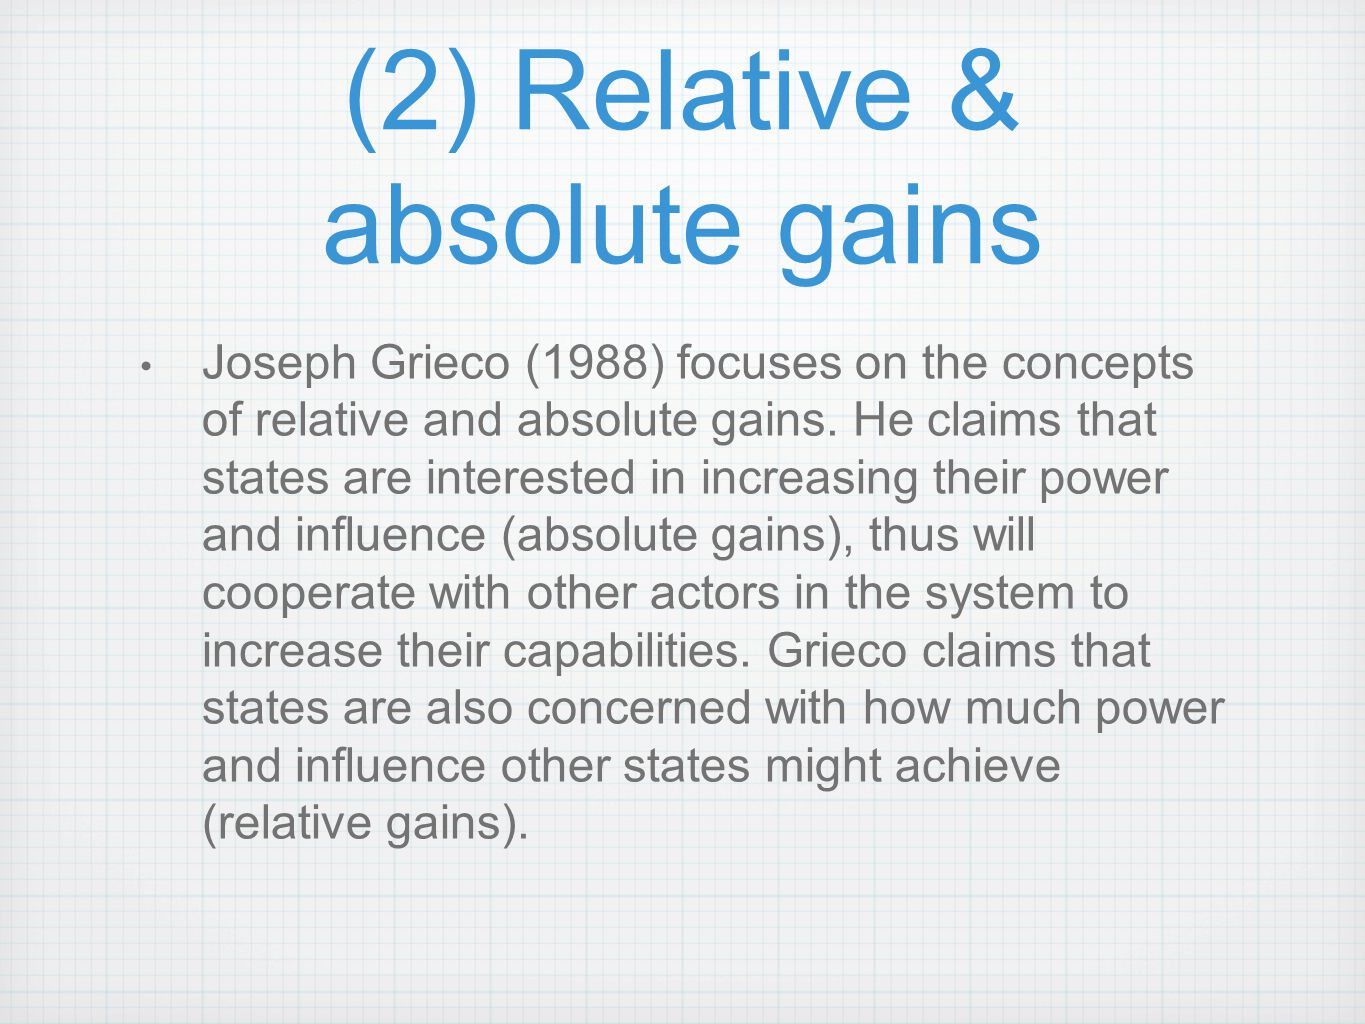 (2) Relative & absolute gains